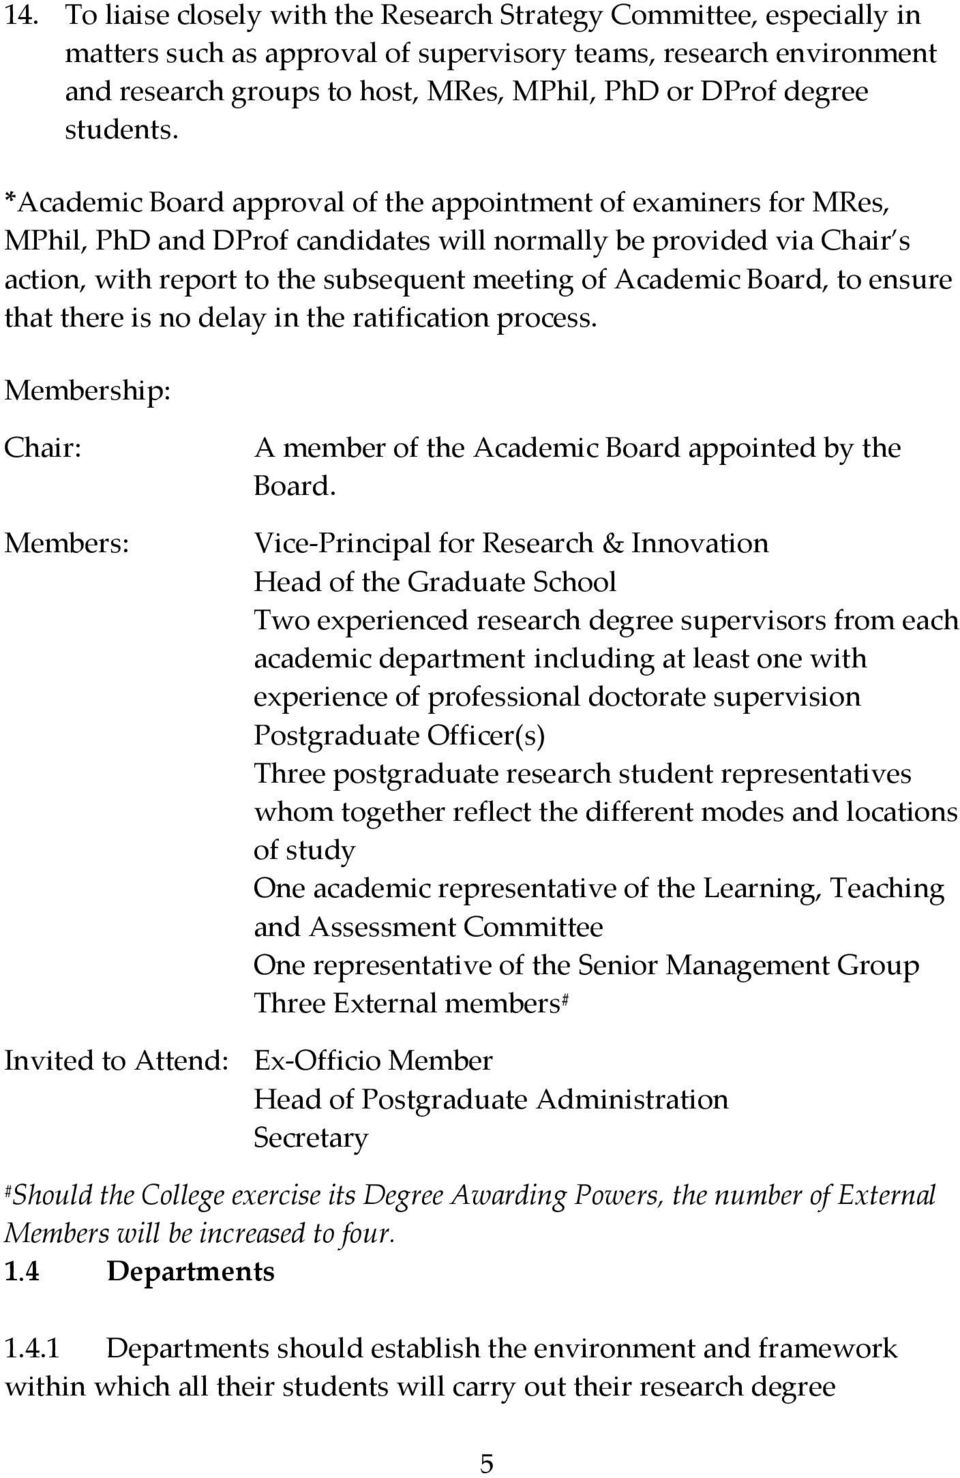 *Academic Board approval of the appointment of examiners for MRes, MPhil, PhD and DProf candidates will normally be provided via Chair s action, with report to the subsequent meeting of Academic